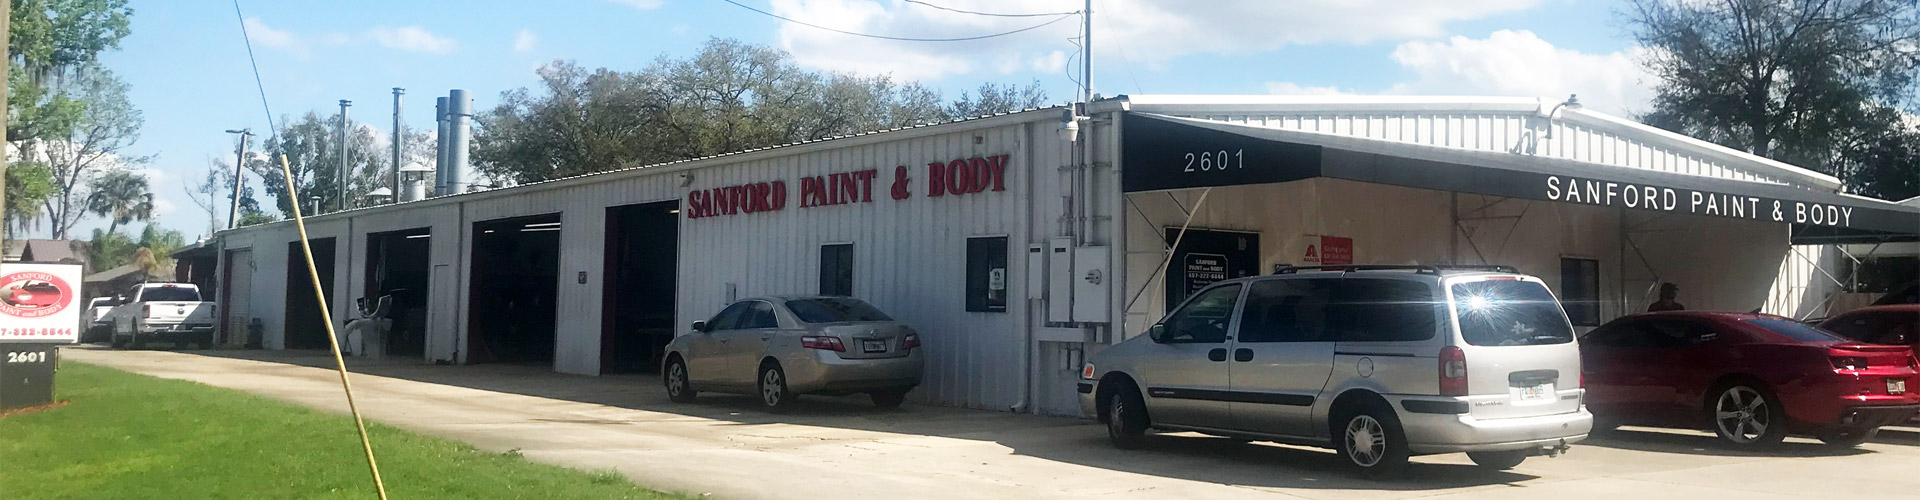 Sanford Paint & Body building